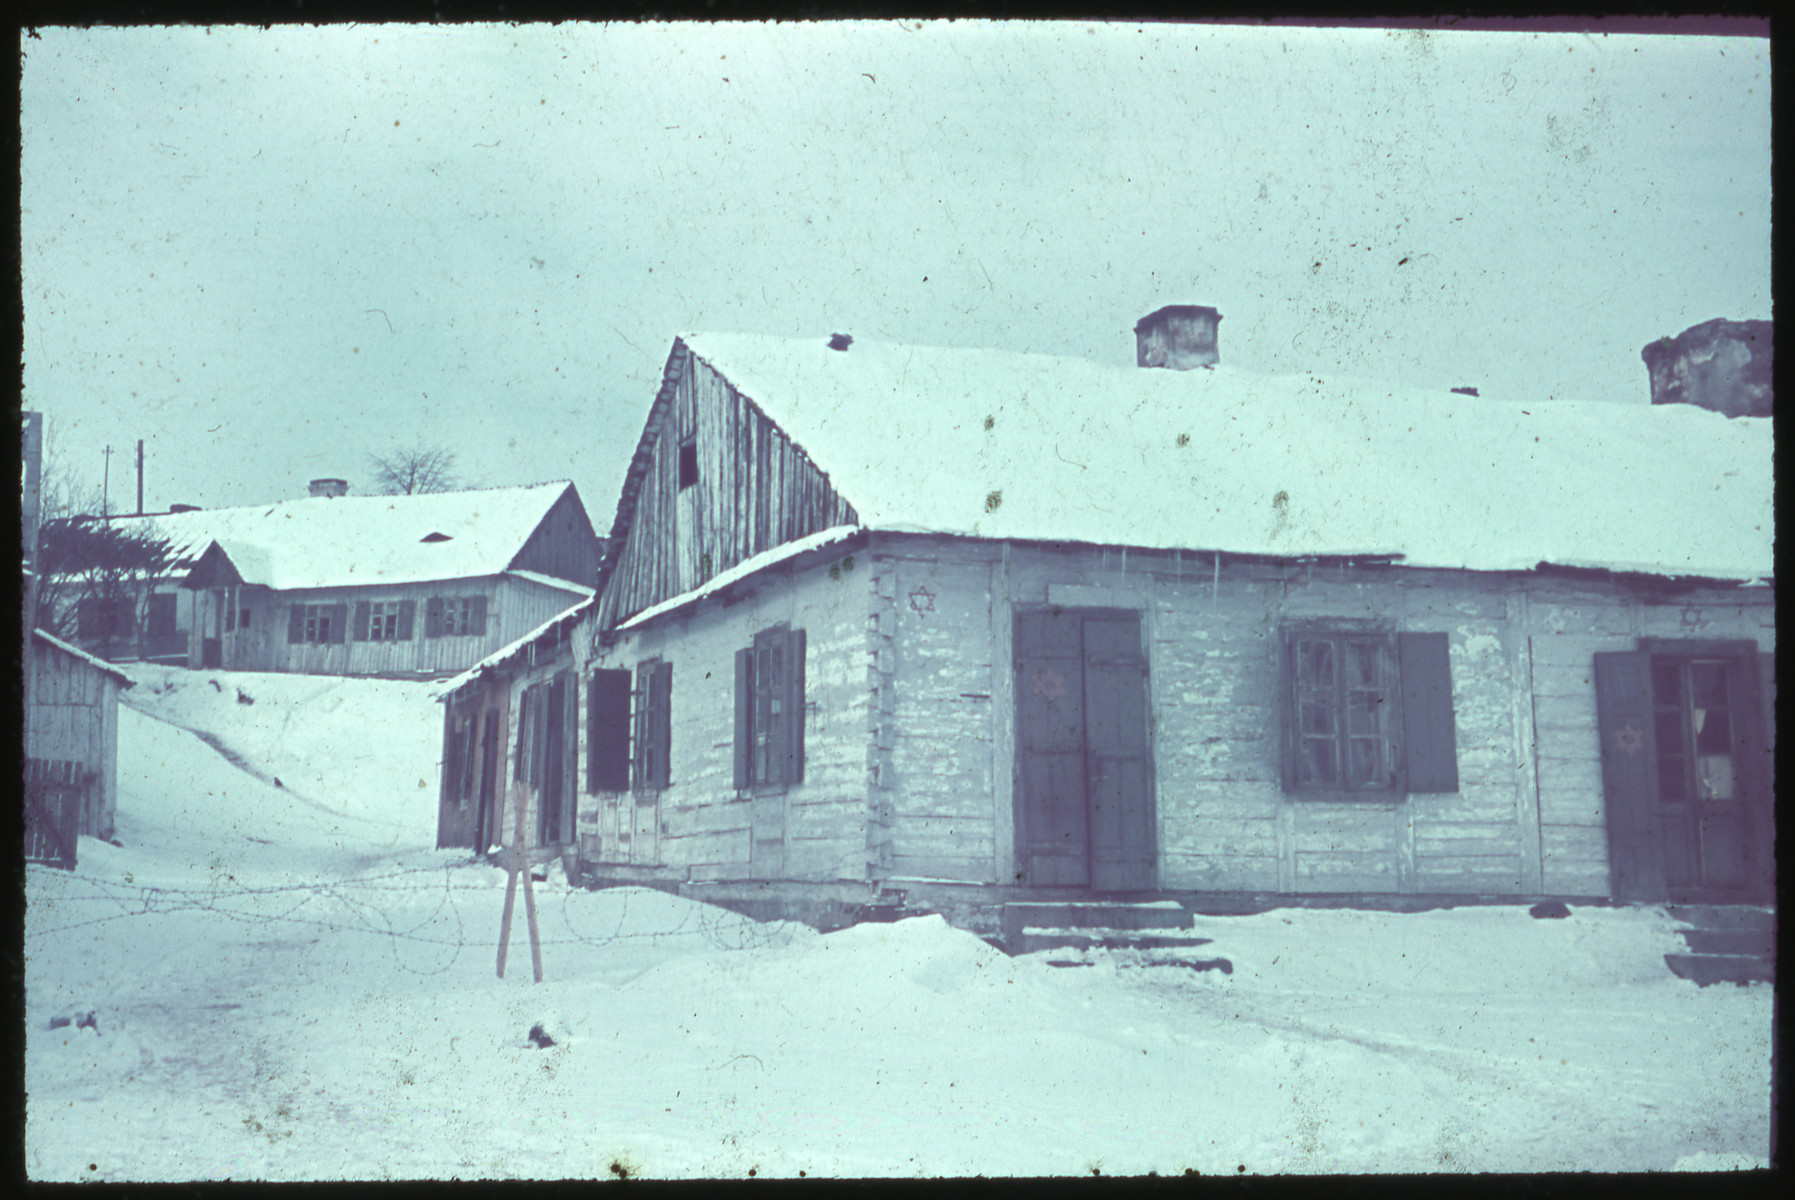 View of a snow covered home [perhaps in Kozienice] marked with Jewish stars on the walls and shutters.